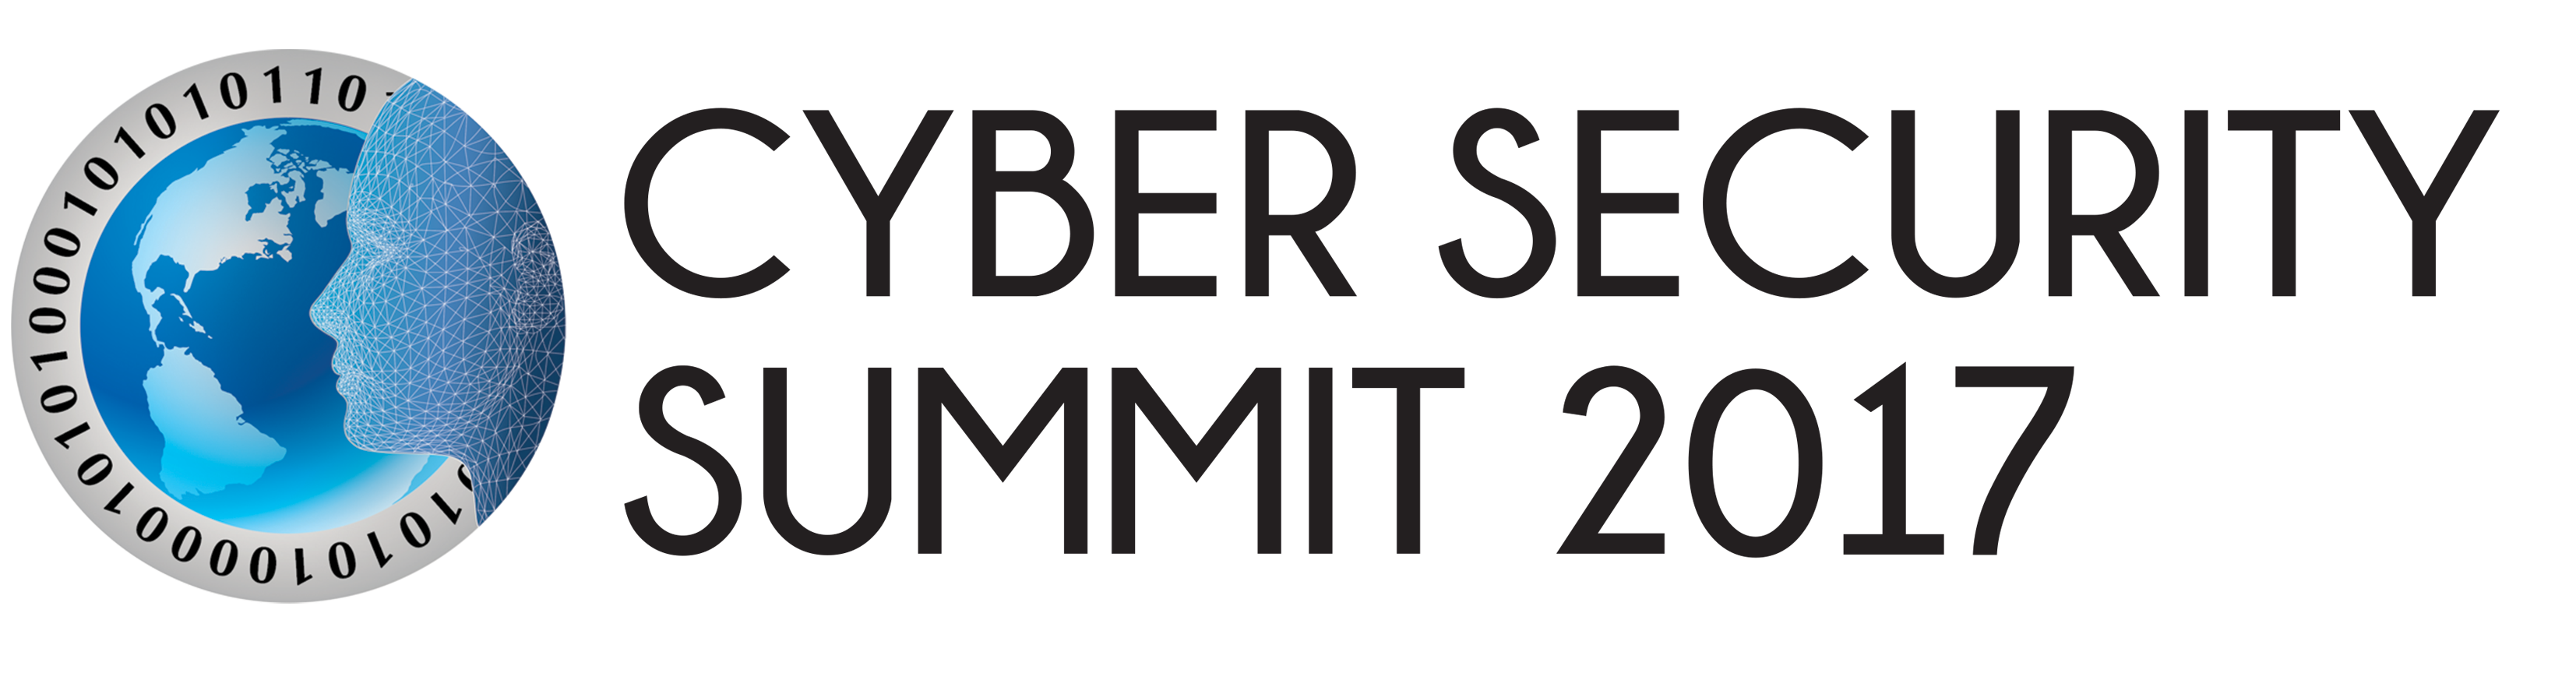 Cyber Security Summit Announces Chairman Emeritus Andrew